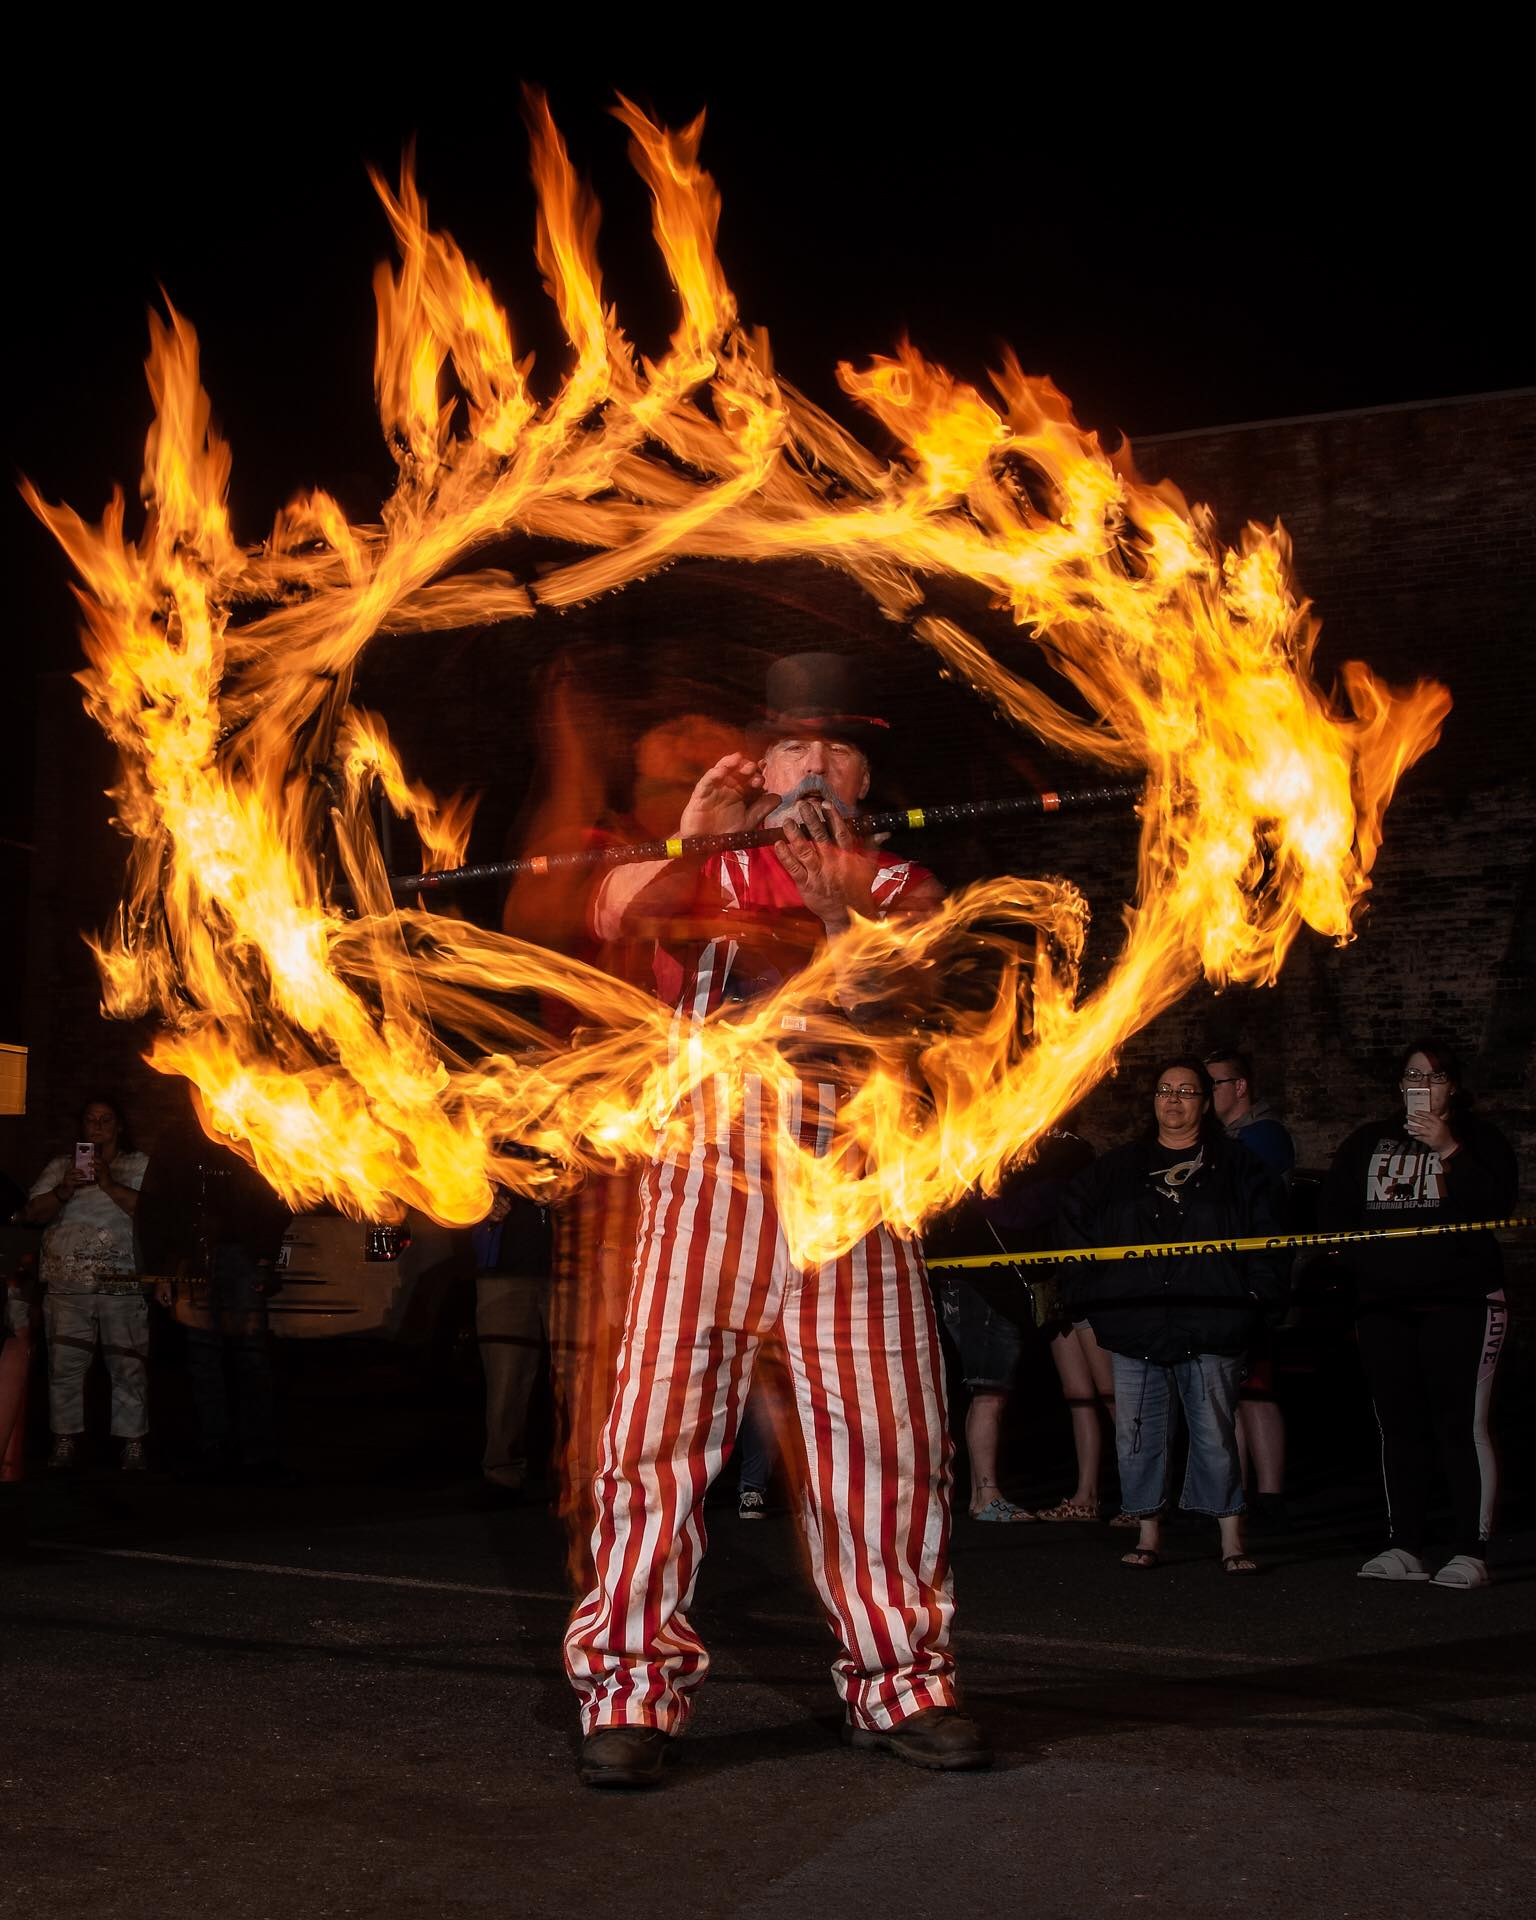 One of our regular performers, Michael Skaggs, always bring the spirit with his outfits, and sometimes drums with actual fire shooting out of them!